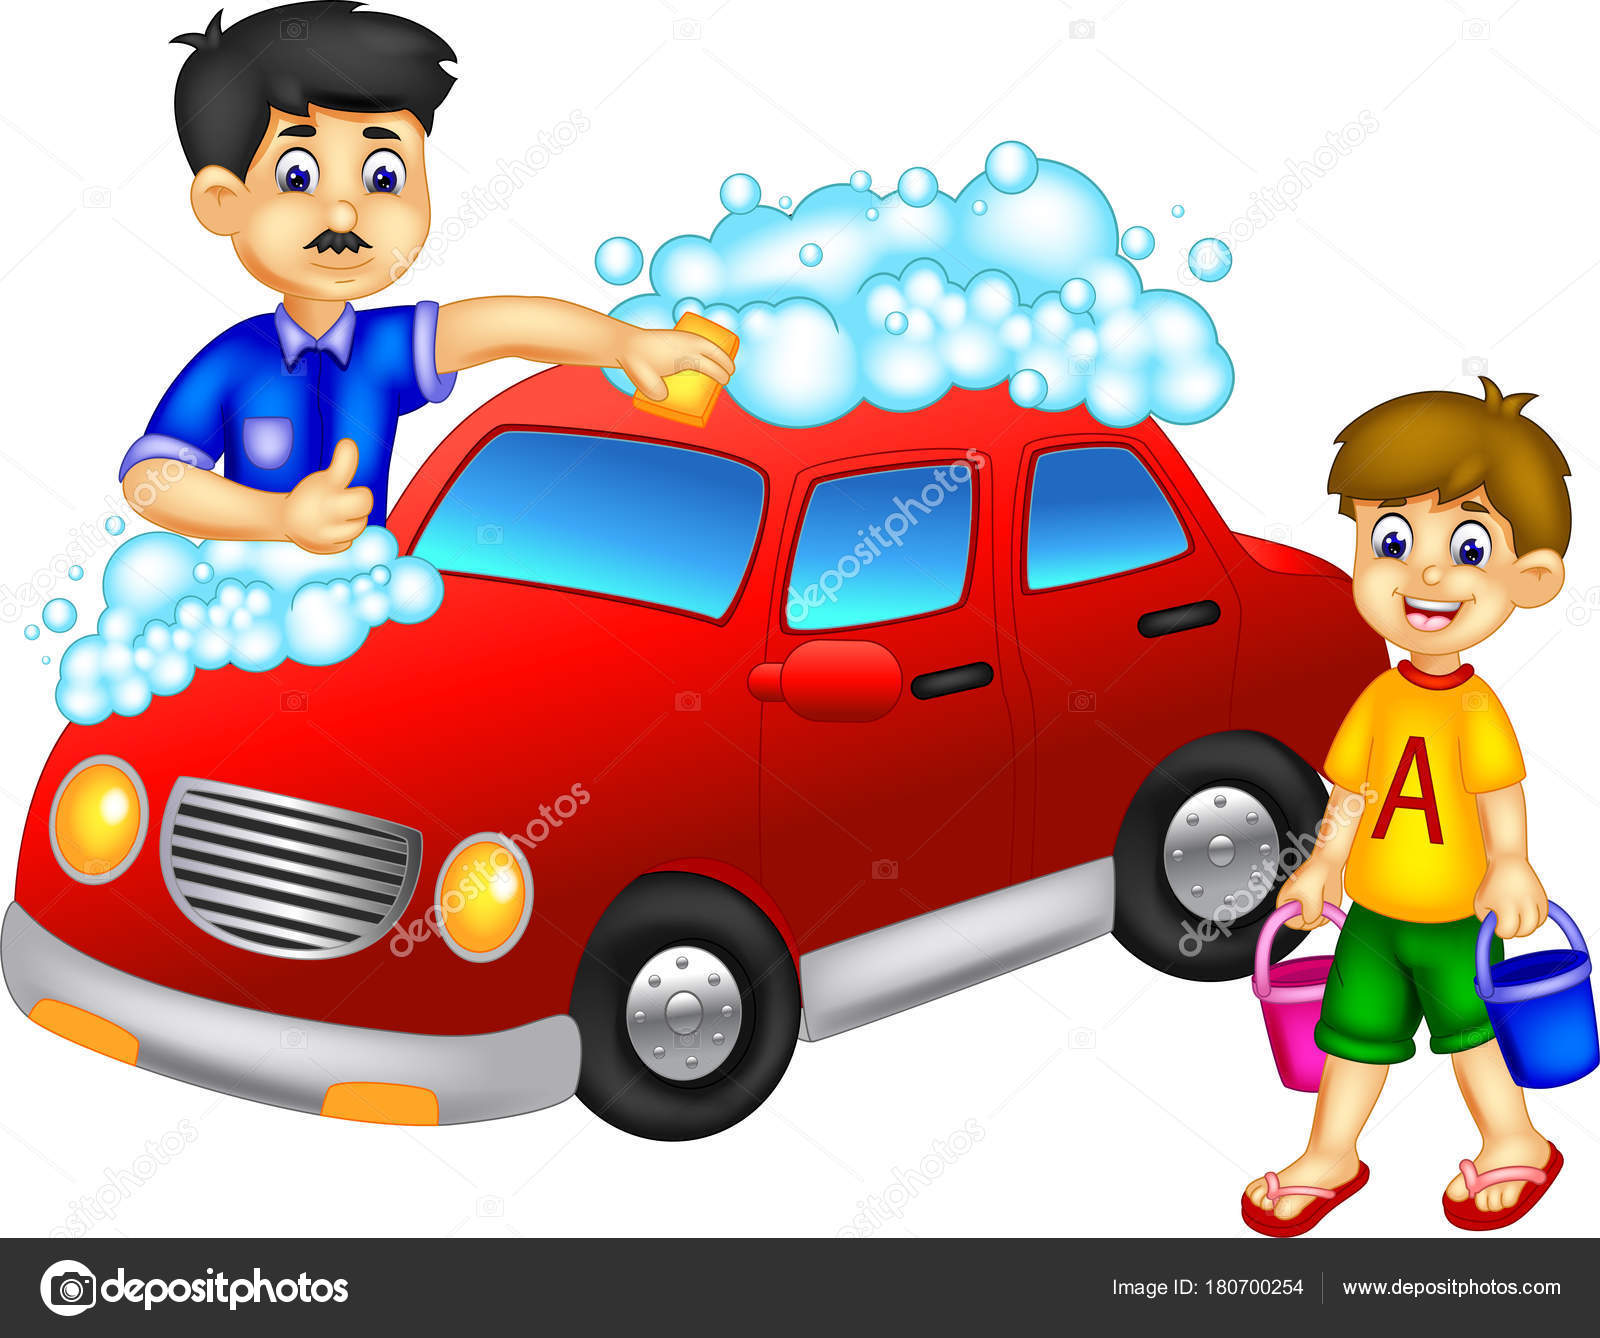 Dad and child clipart 2 | Nice clip art